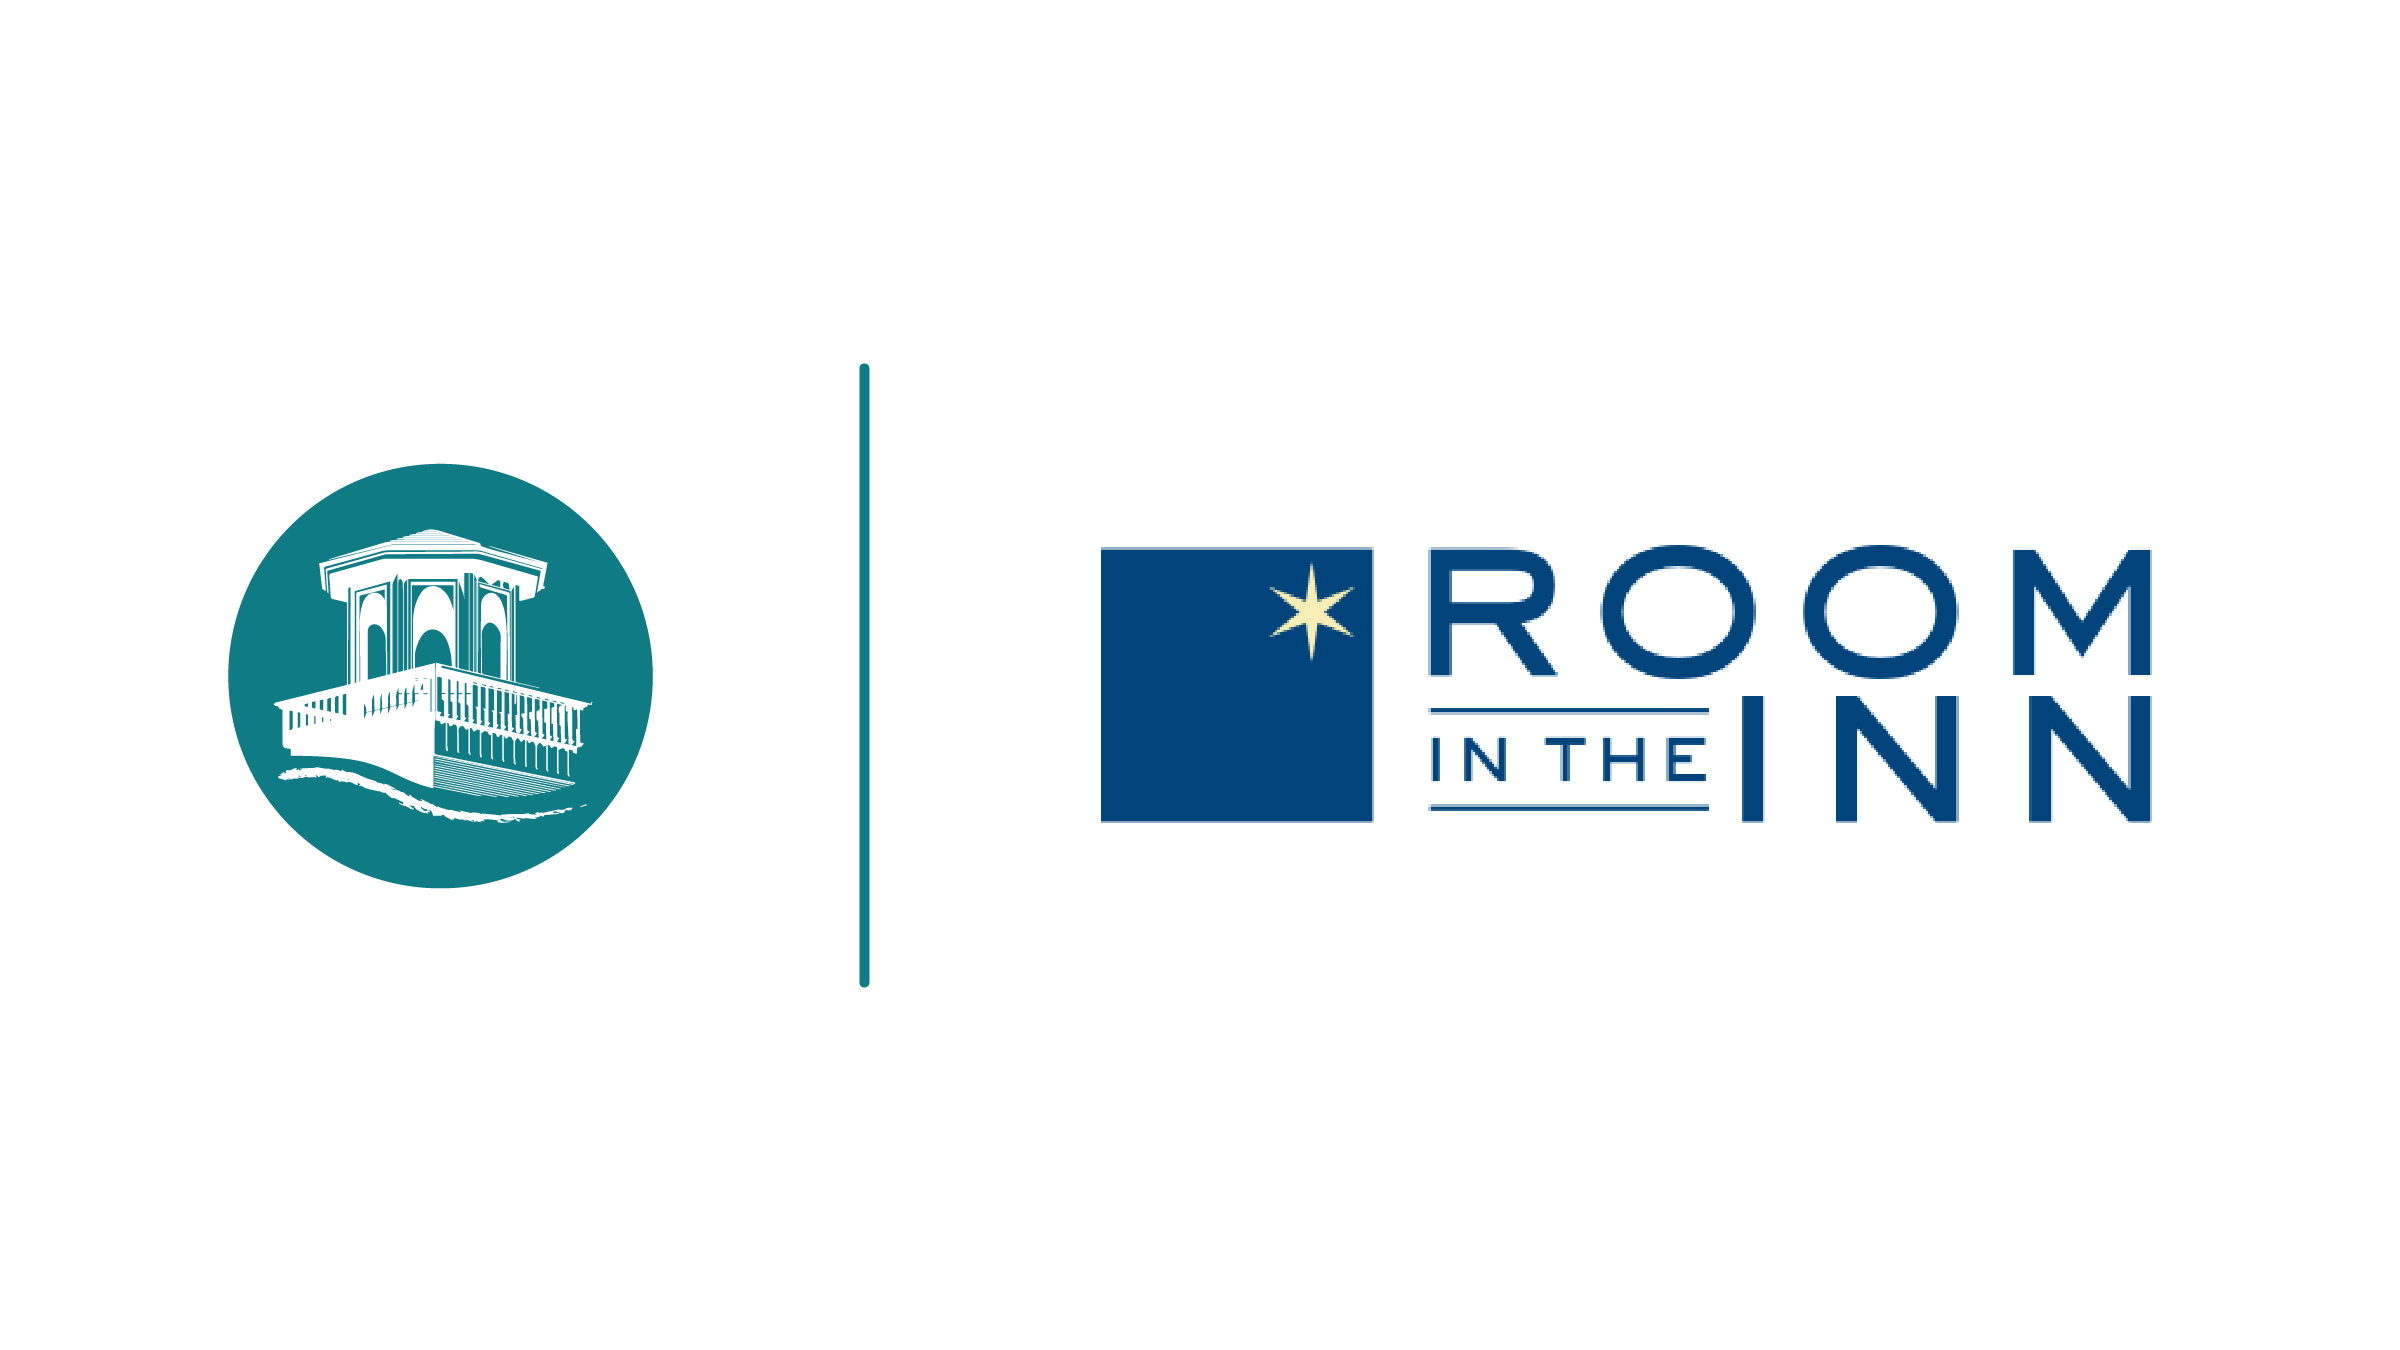 - Unity of Nashville collaborates with Room In The Inn to provide shelter, food, drink, clothing, and community to guests experiencing homelessness during the winter months. Sign up to help!